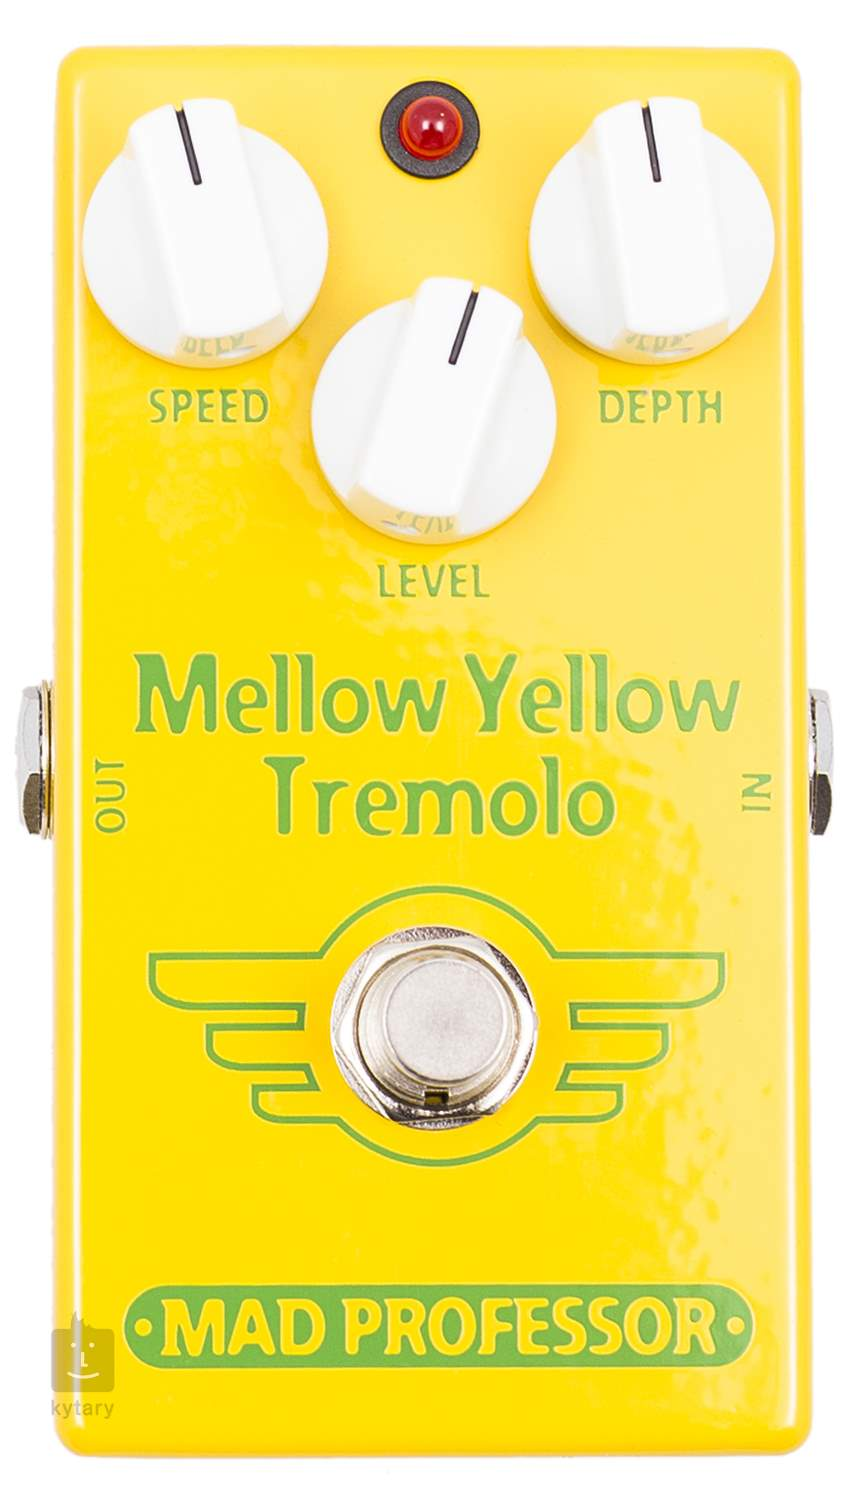 Mad professor mellow yellow tremolo gitarov efekt - Mellow yellow boutique ...